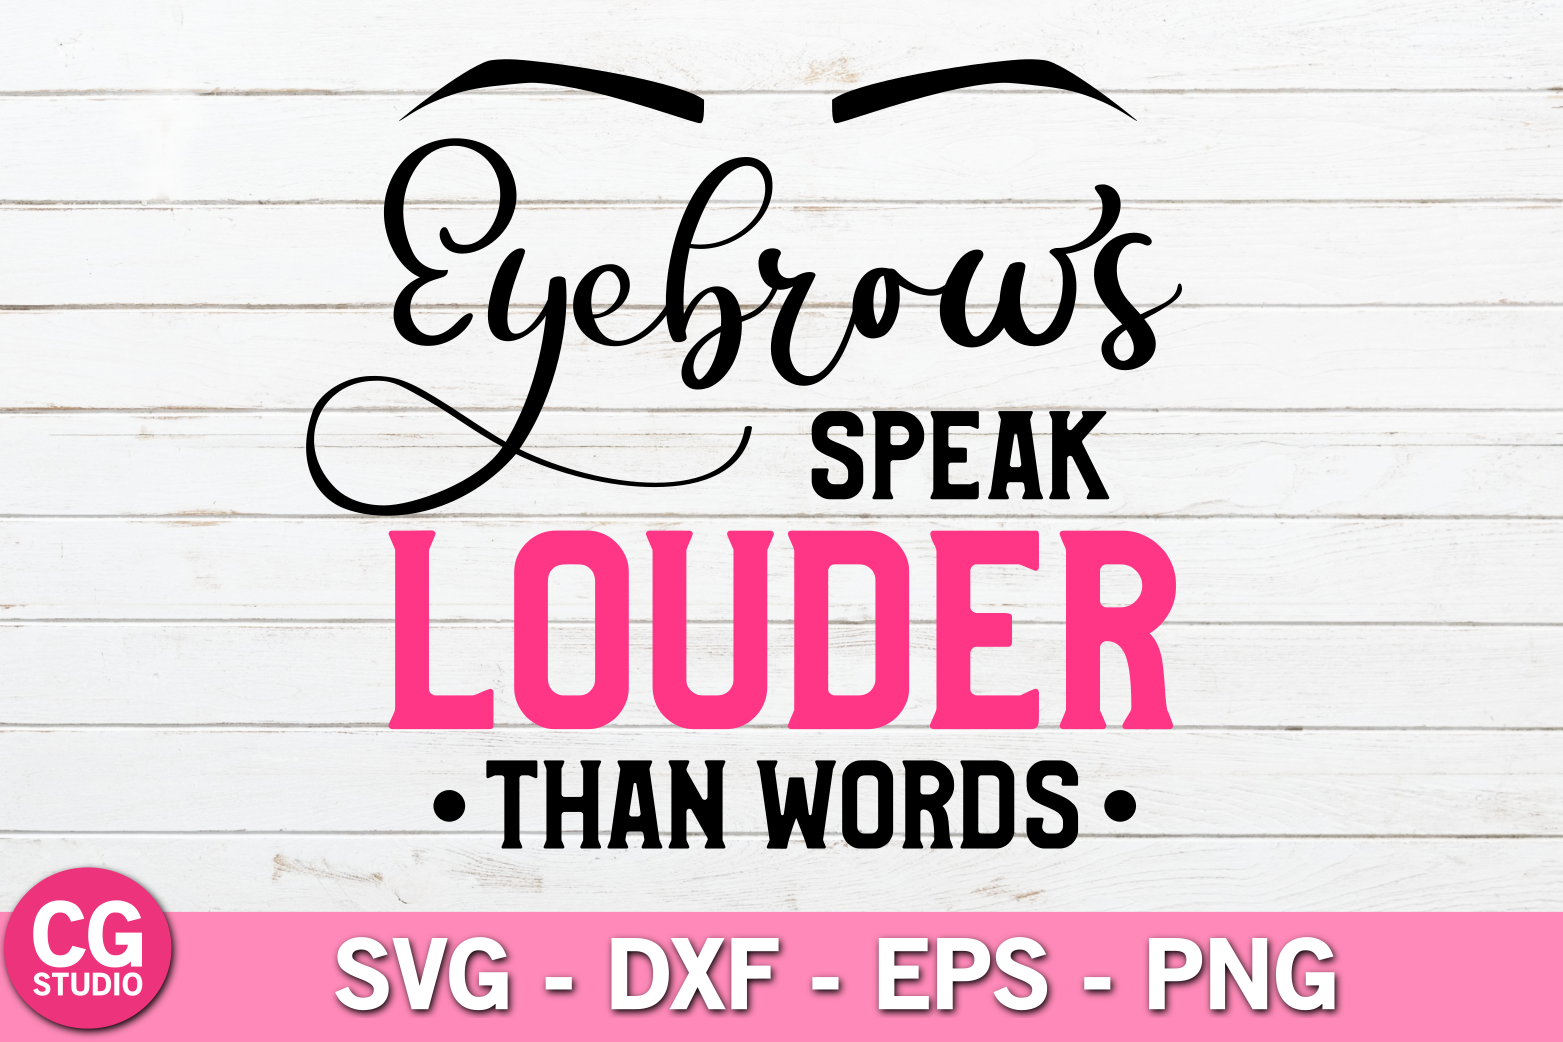 Eyebrows speak louder than words SVG example image 1